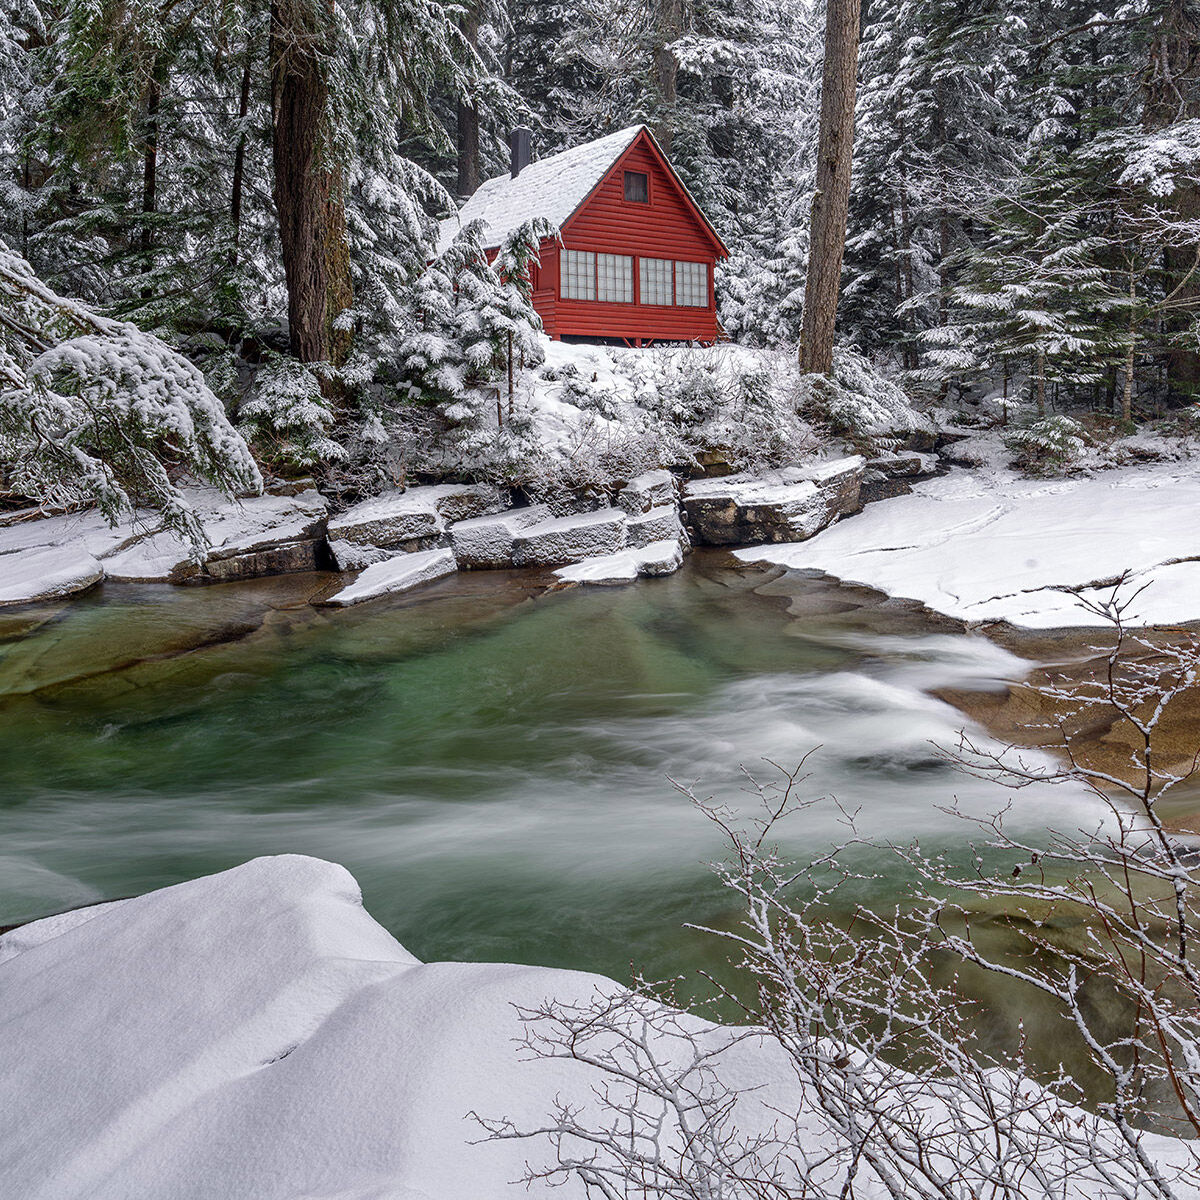 A fine art photograph of a red cabin in the woods next to Denny Creek on Snoqualmie Pass in Washington State.